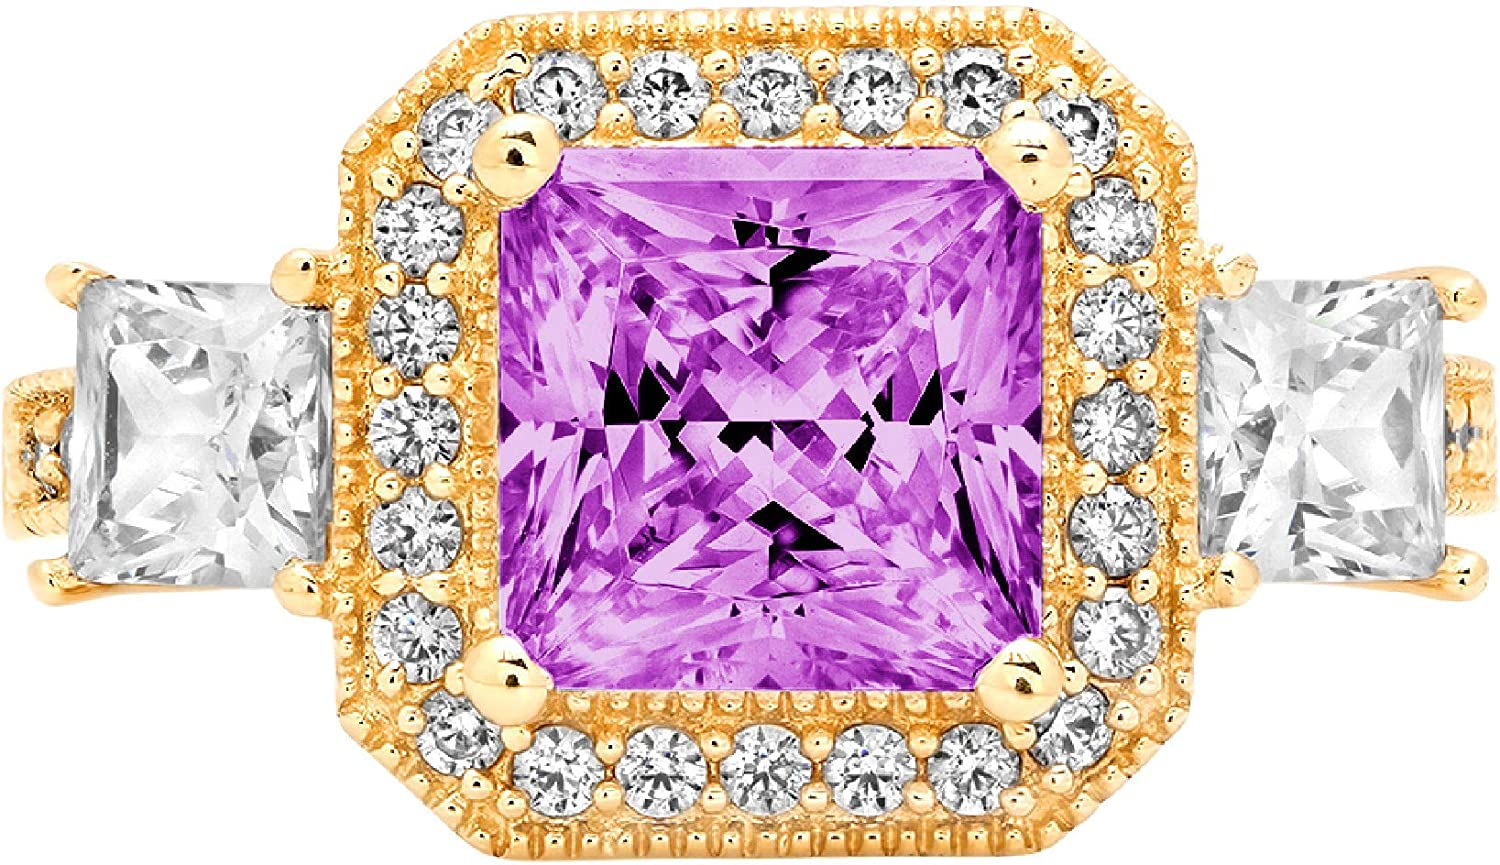 2.98 Cushion Princess Cut Halo Solitaire 3 stone Accent Stunning Genuine Flawless Simulated Purple Alexandrite Modern Promise Statement Designer Ring 14k Yellow Gold